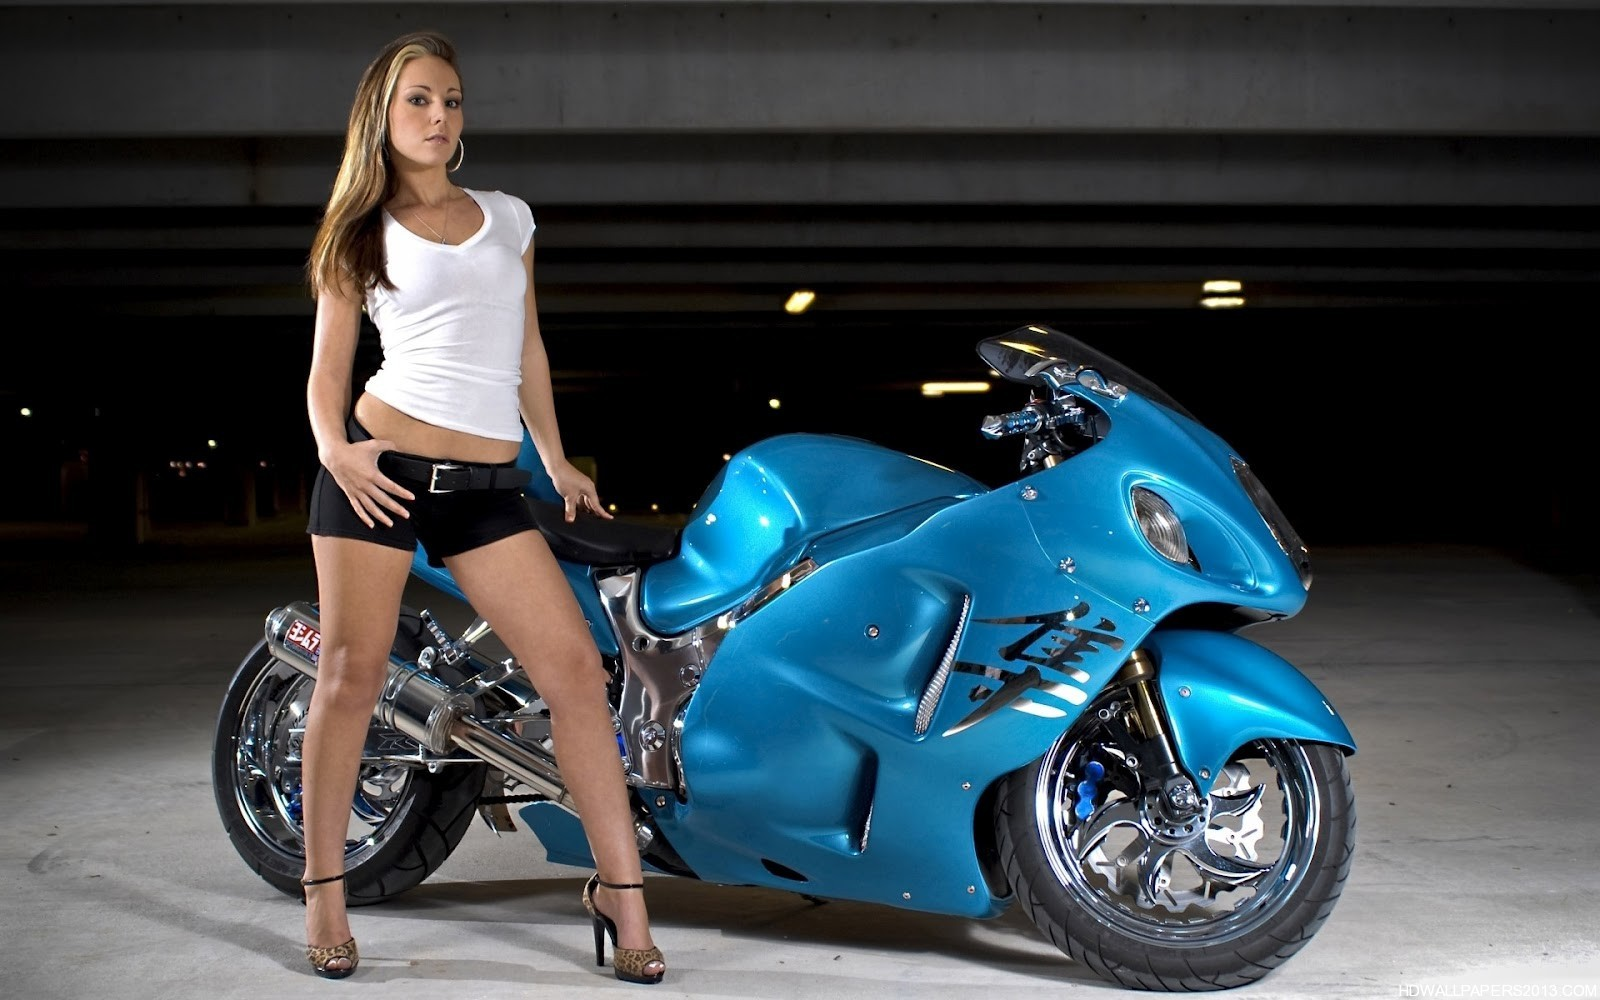 Bike Girl HD Wallpapers HD Wallpapers Bike Girl HD Wallpapers 1600x1000